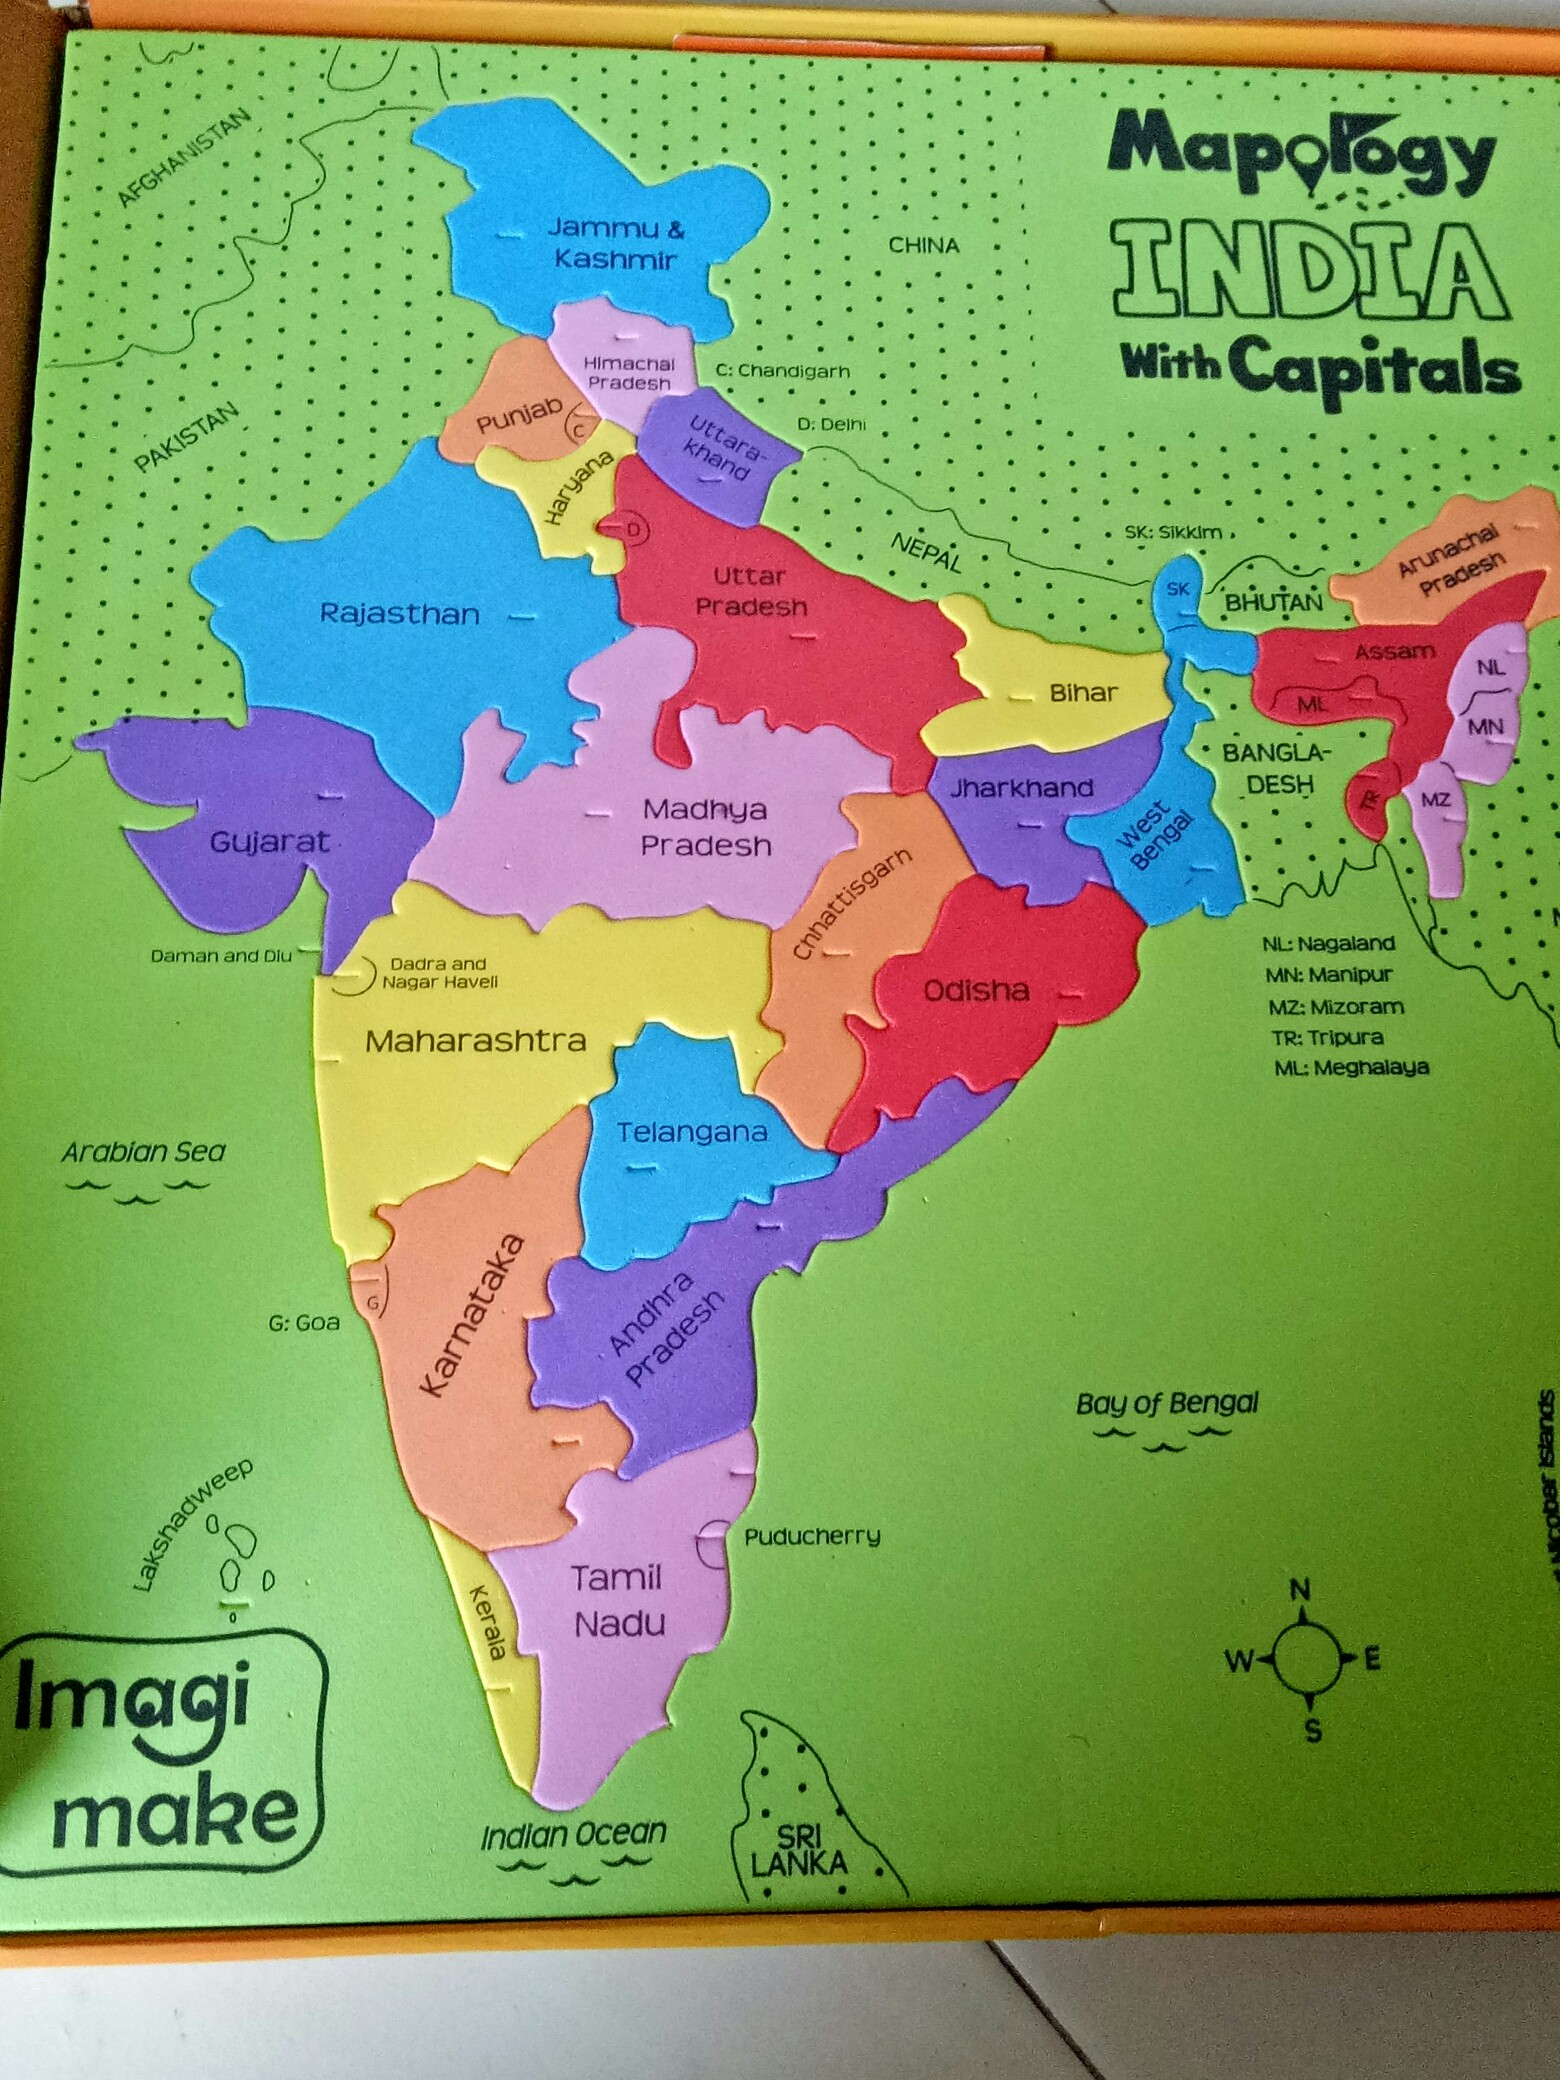 The new launch: Mapology - India with Capitals – Imagimake